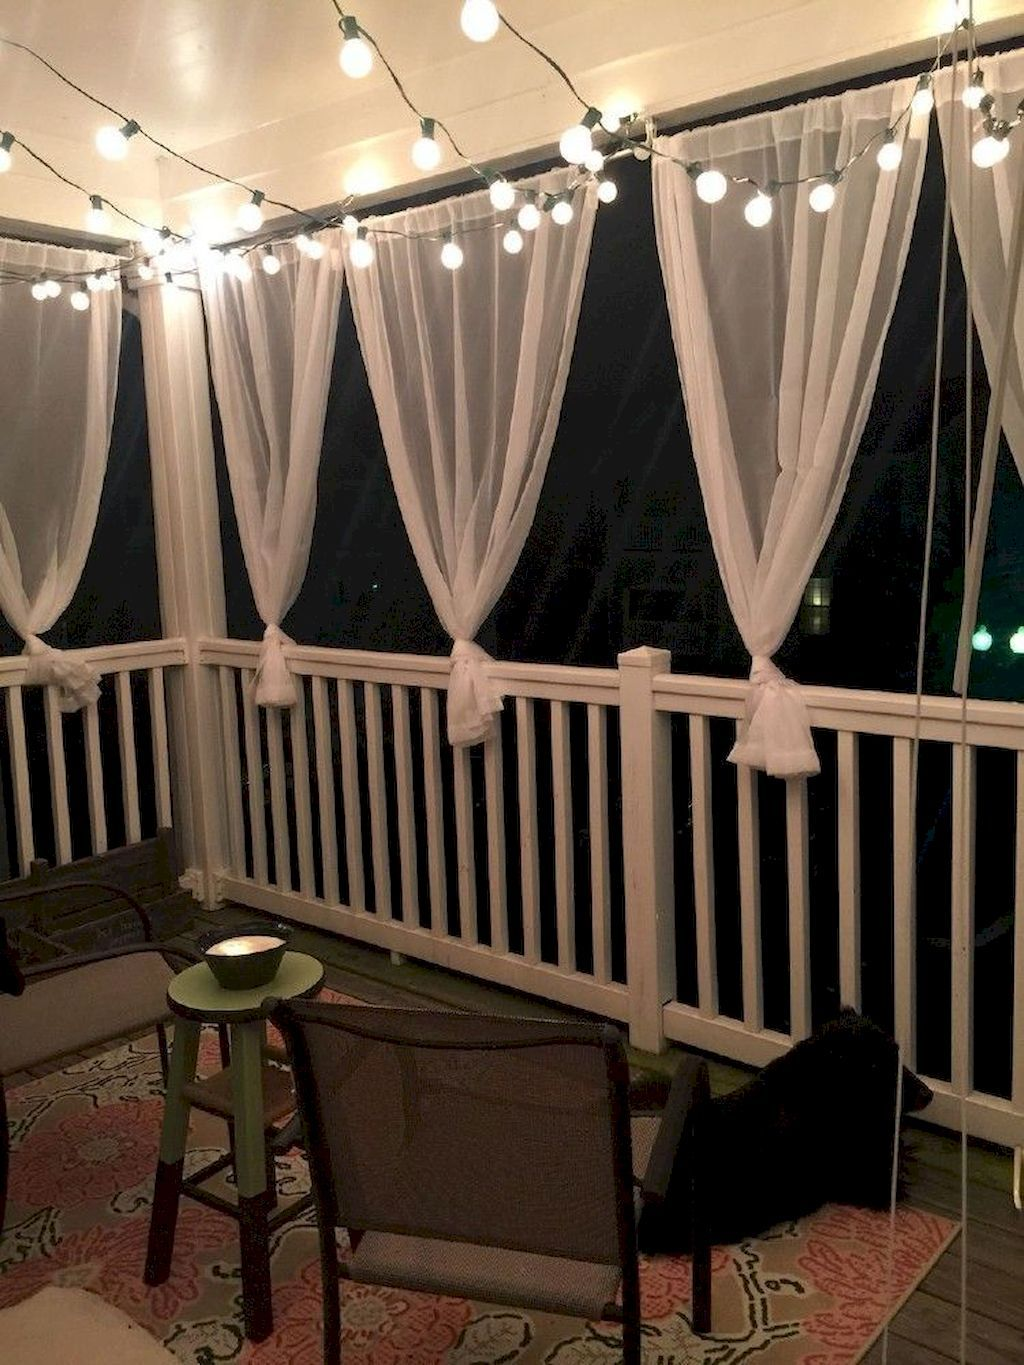 75 Cozy Apartment Balcony Decorating Ideas #apartmentbalconydecorating